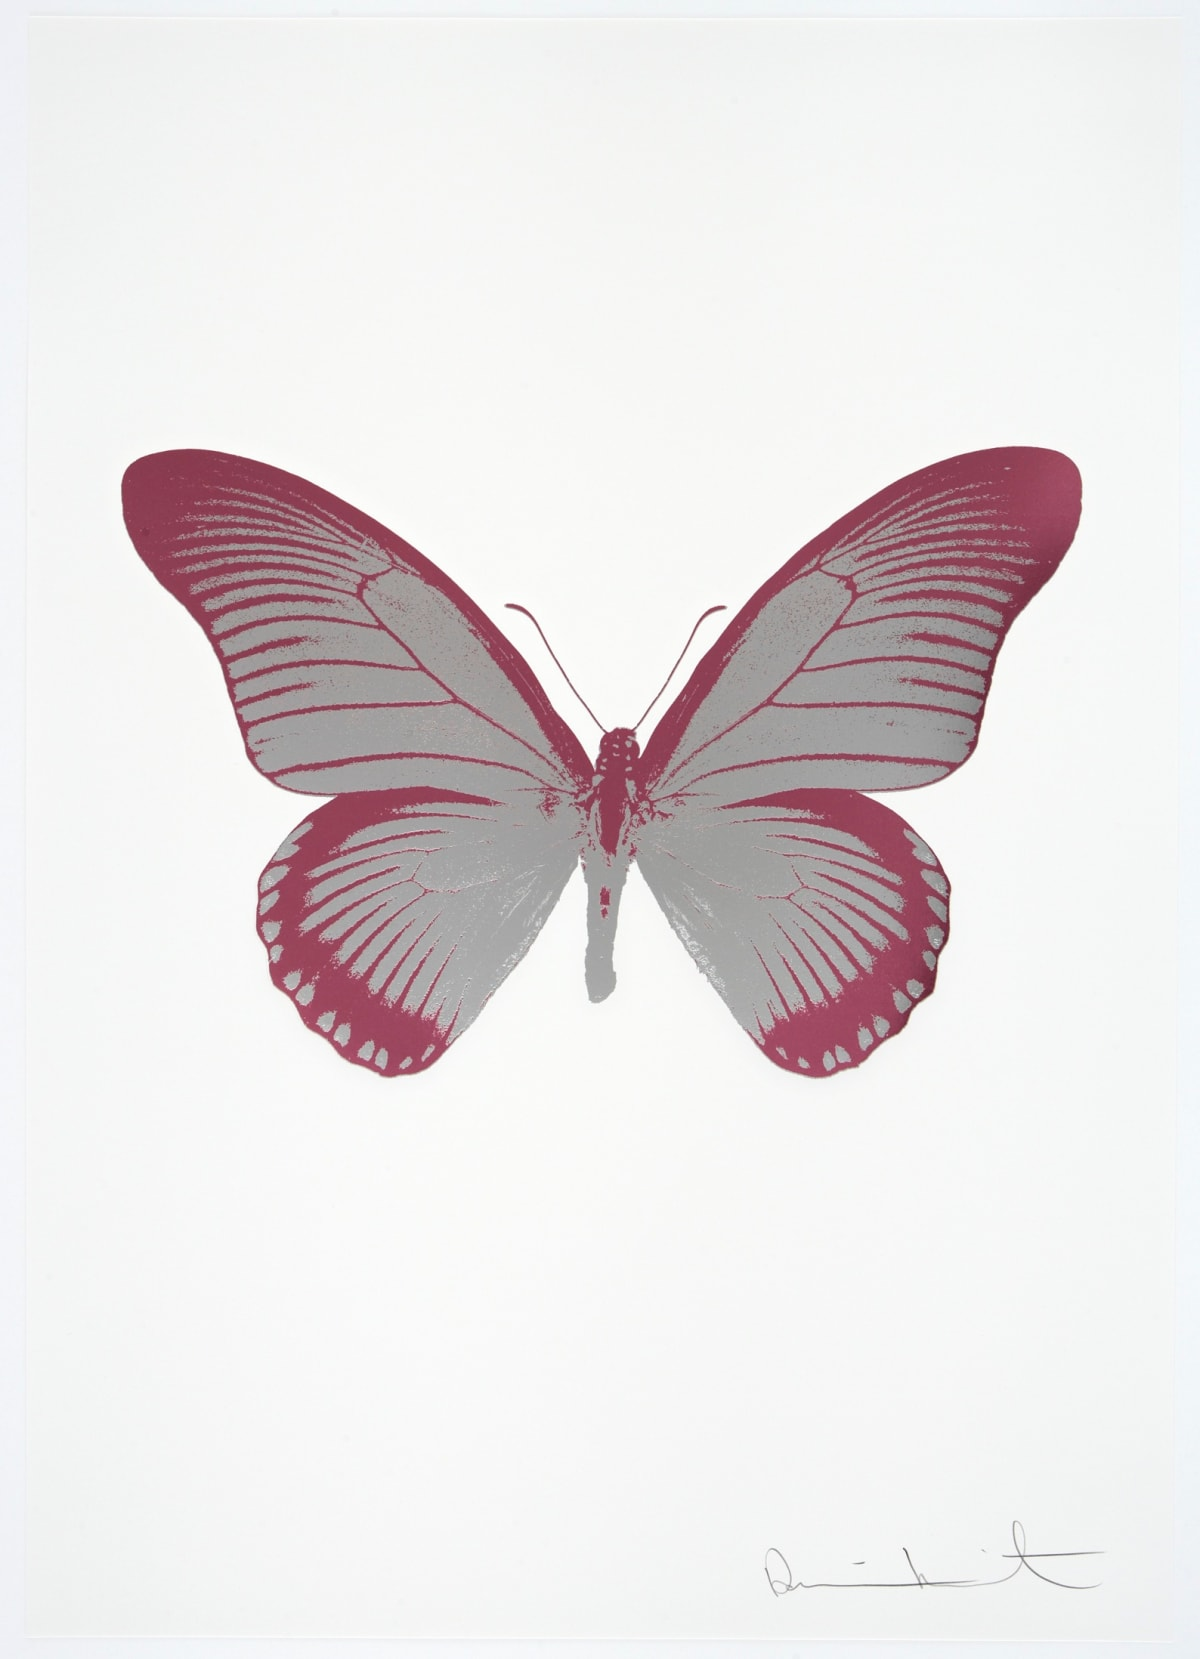 Damien Hirst The Souls IV - Silver Gloss/Loganberry Pink Damien Hirst butterfly foil print for sale Damien Hirst print for sale , 2010 2 colour foil block on 300gsm Arches 88 archival paper. Signed and numbered. Published by Paul Stolper and Other Criteria 72 x 51cm OC7990 / 1418-13 Edition of 15